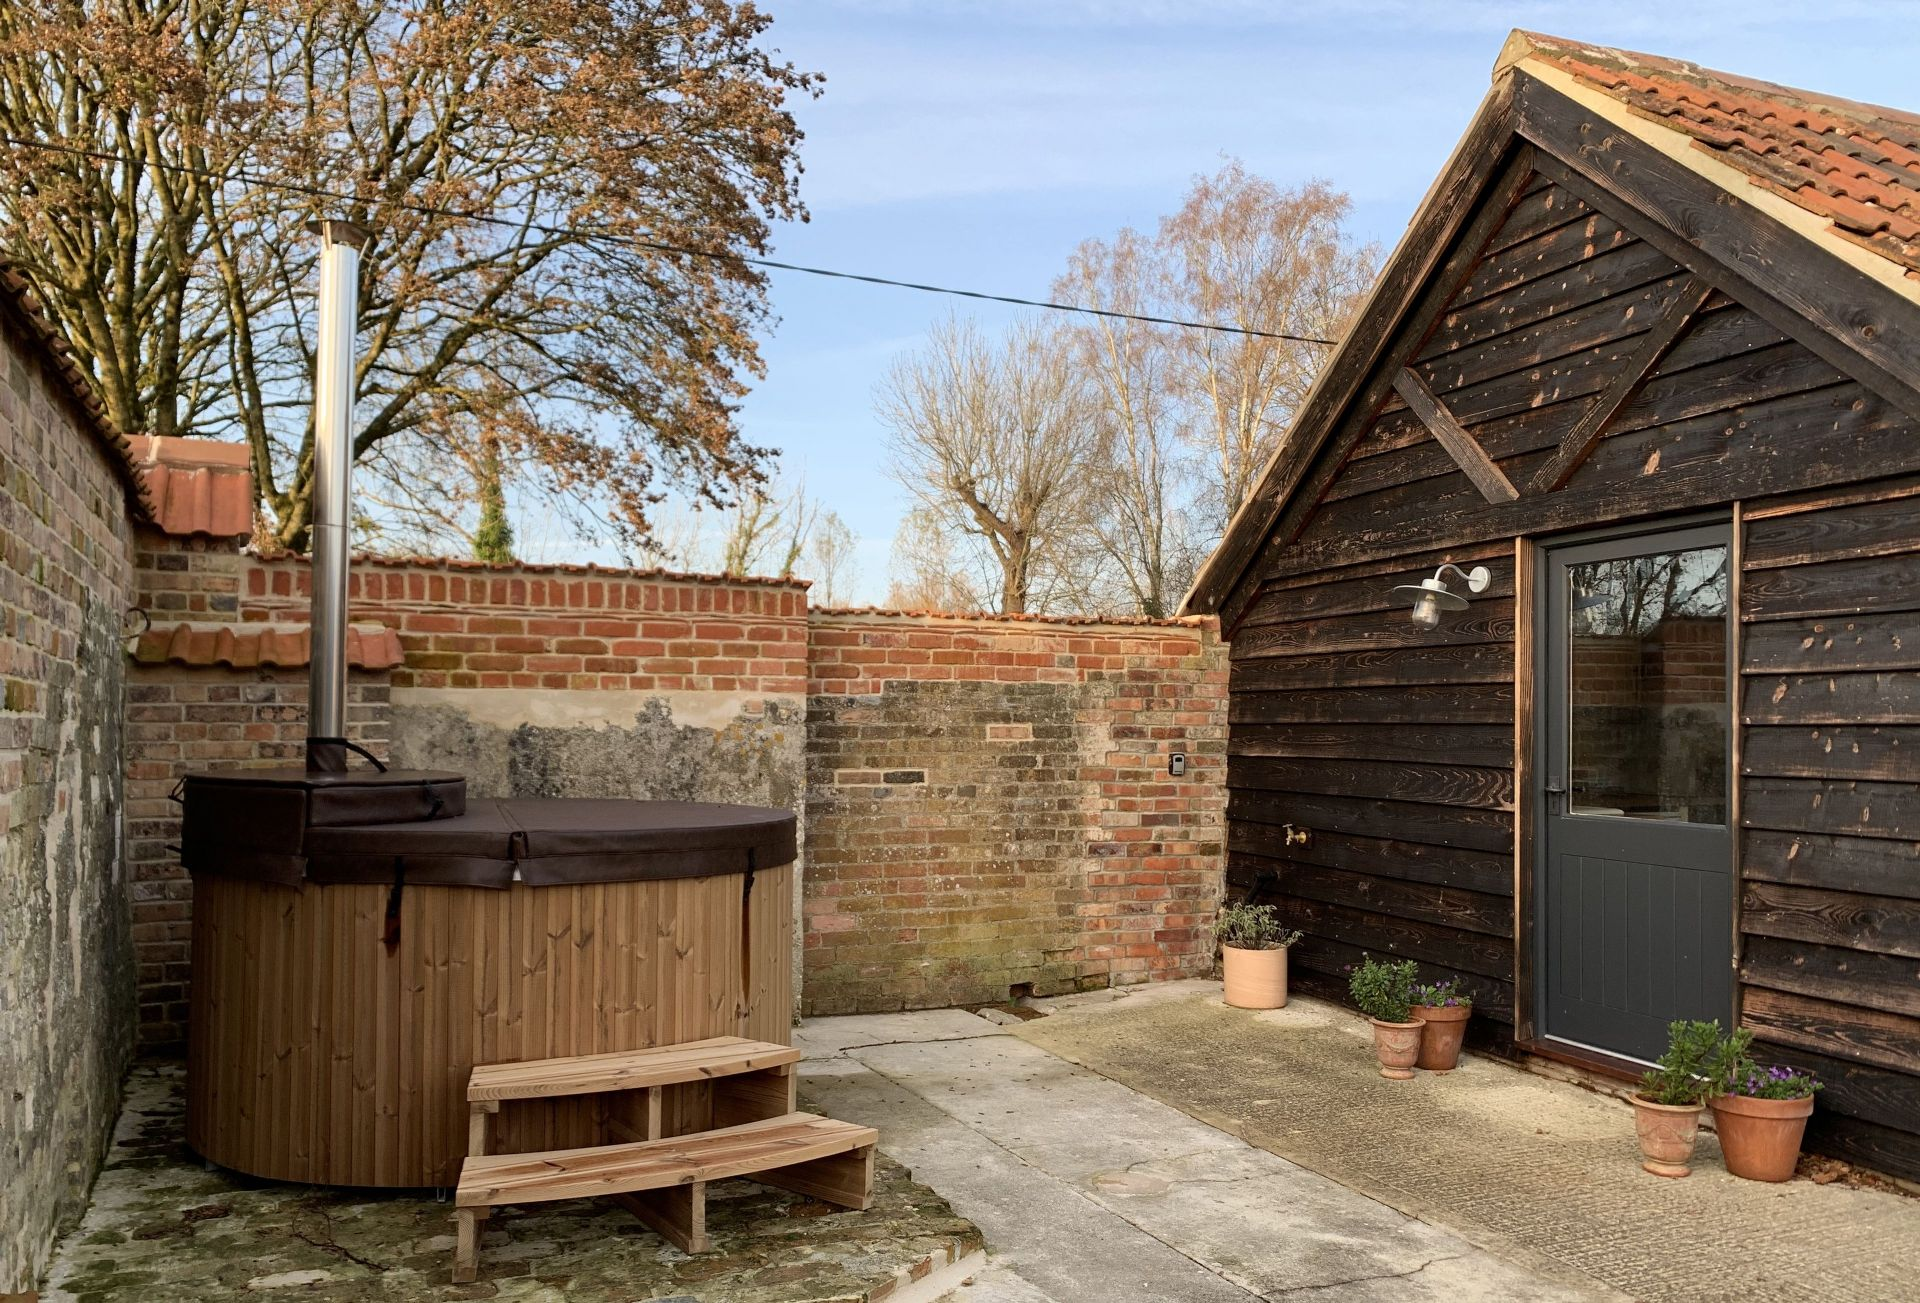 Park Farm Byre a british holiday cottage for 5 in ,